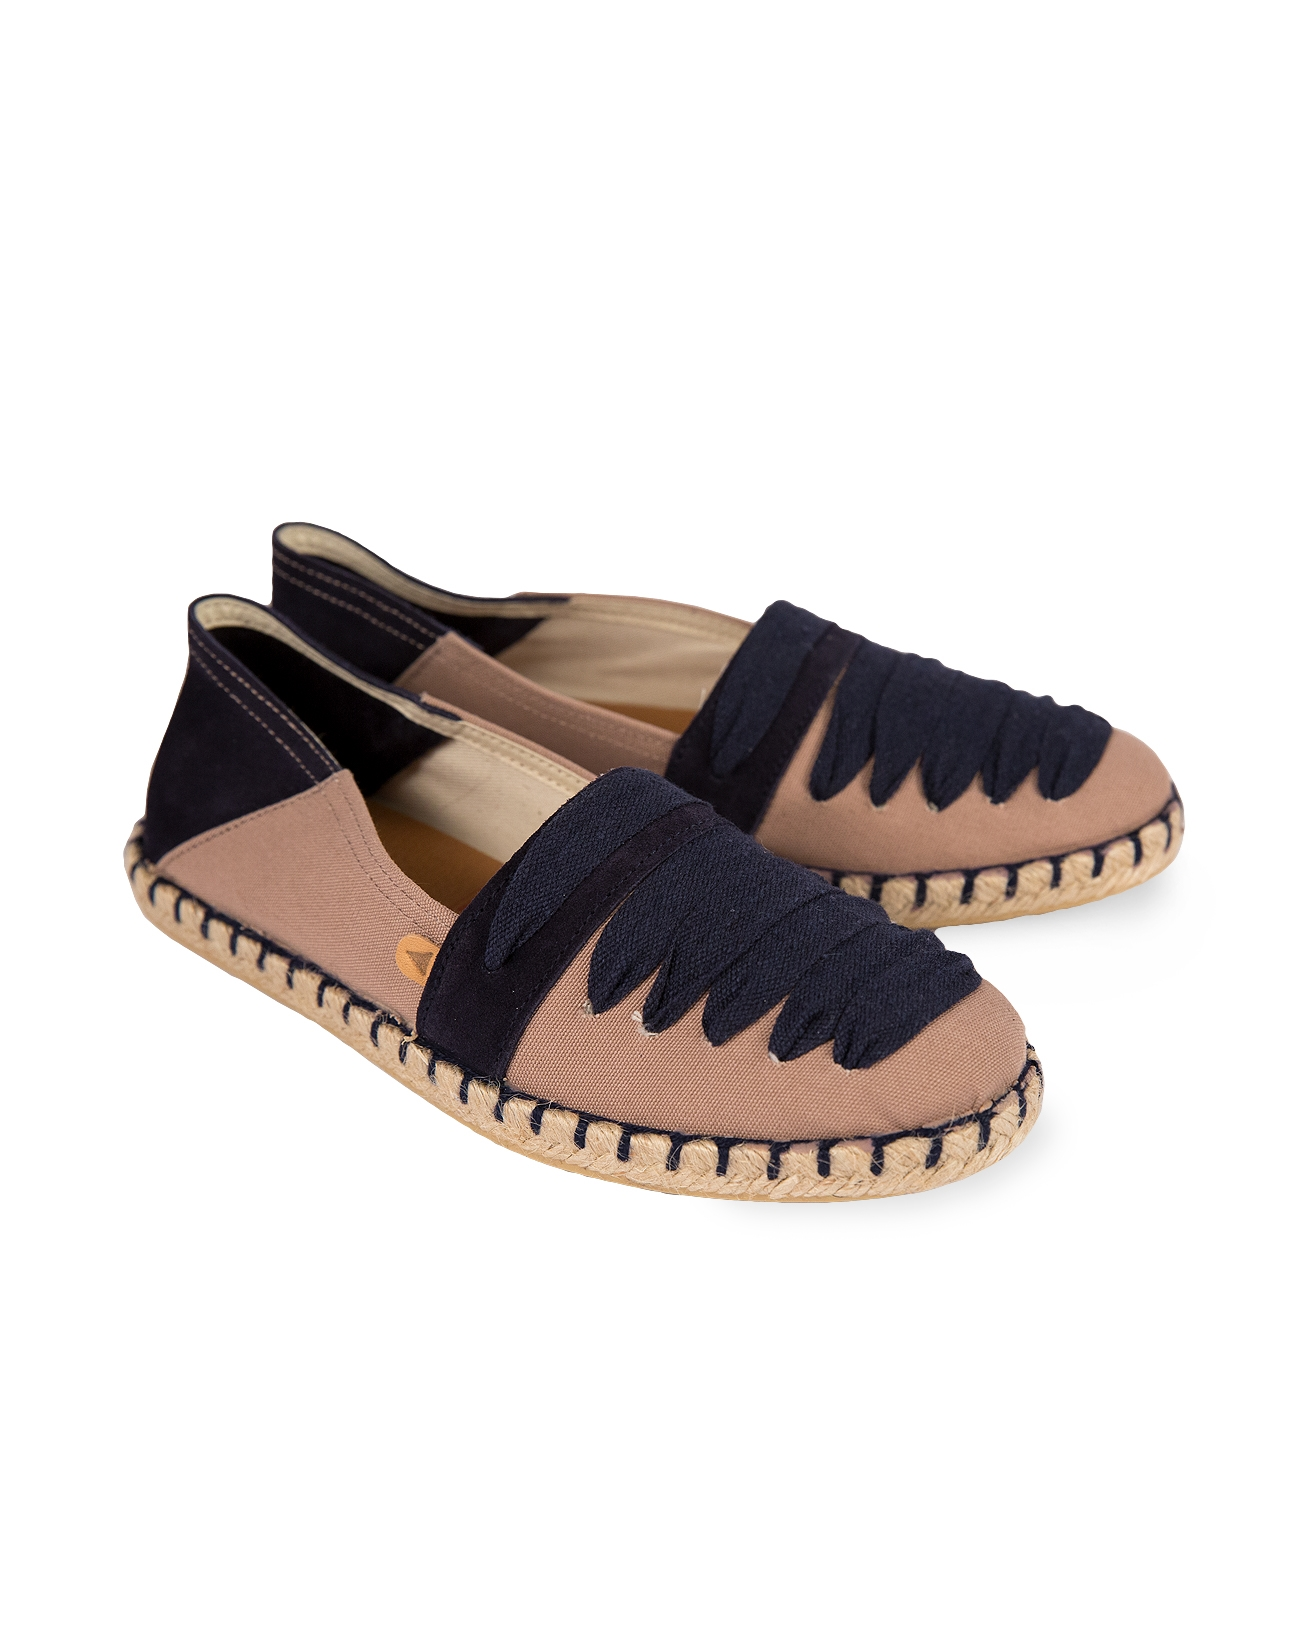 Navy & Taupe Lace Detail Espadrilles - Size 37 - 27